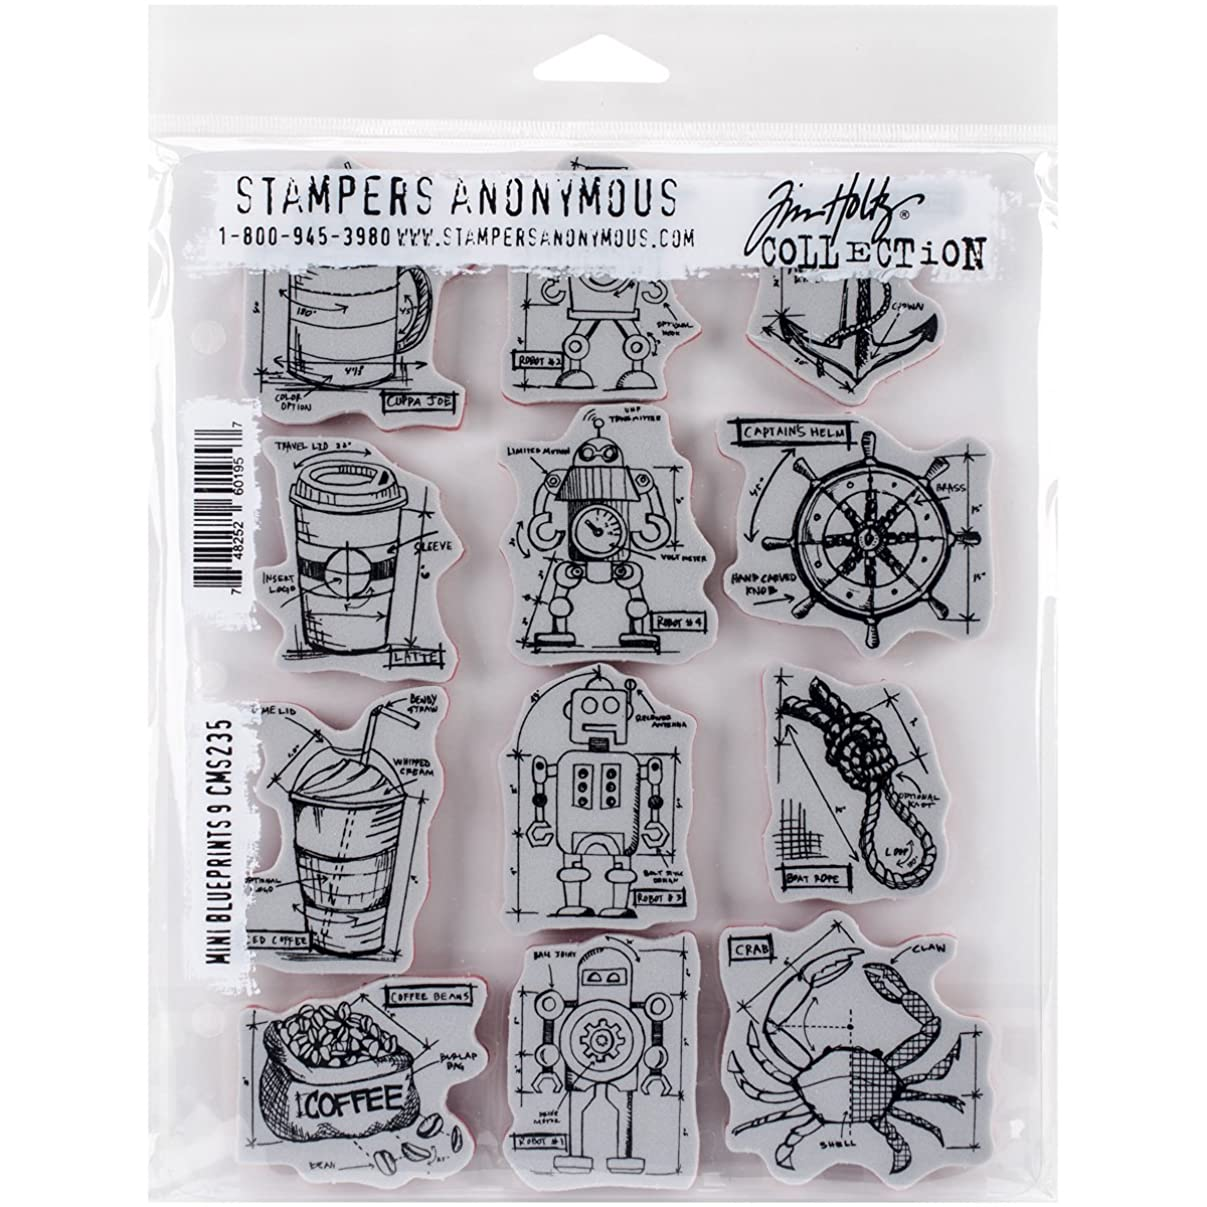 Stampers Anonymous Tim Holtz Cling Rubber Mini Blueprints No.9 Stamp Set, 7 x 8.5 d24001883797007